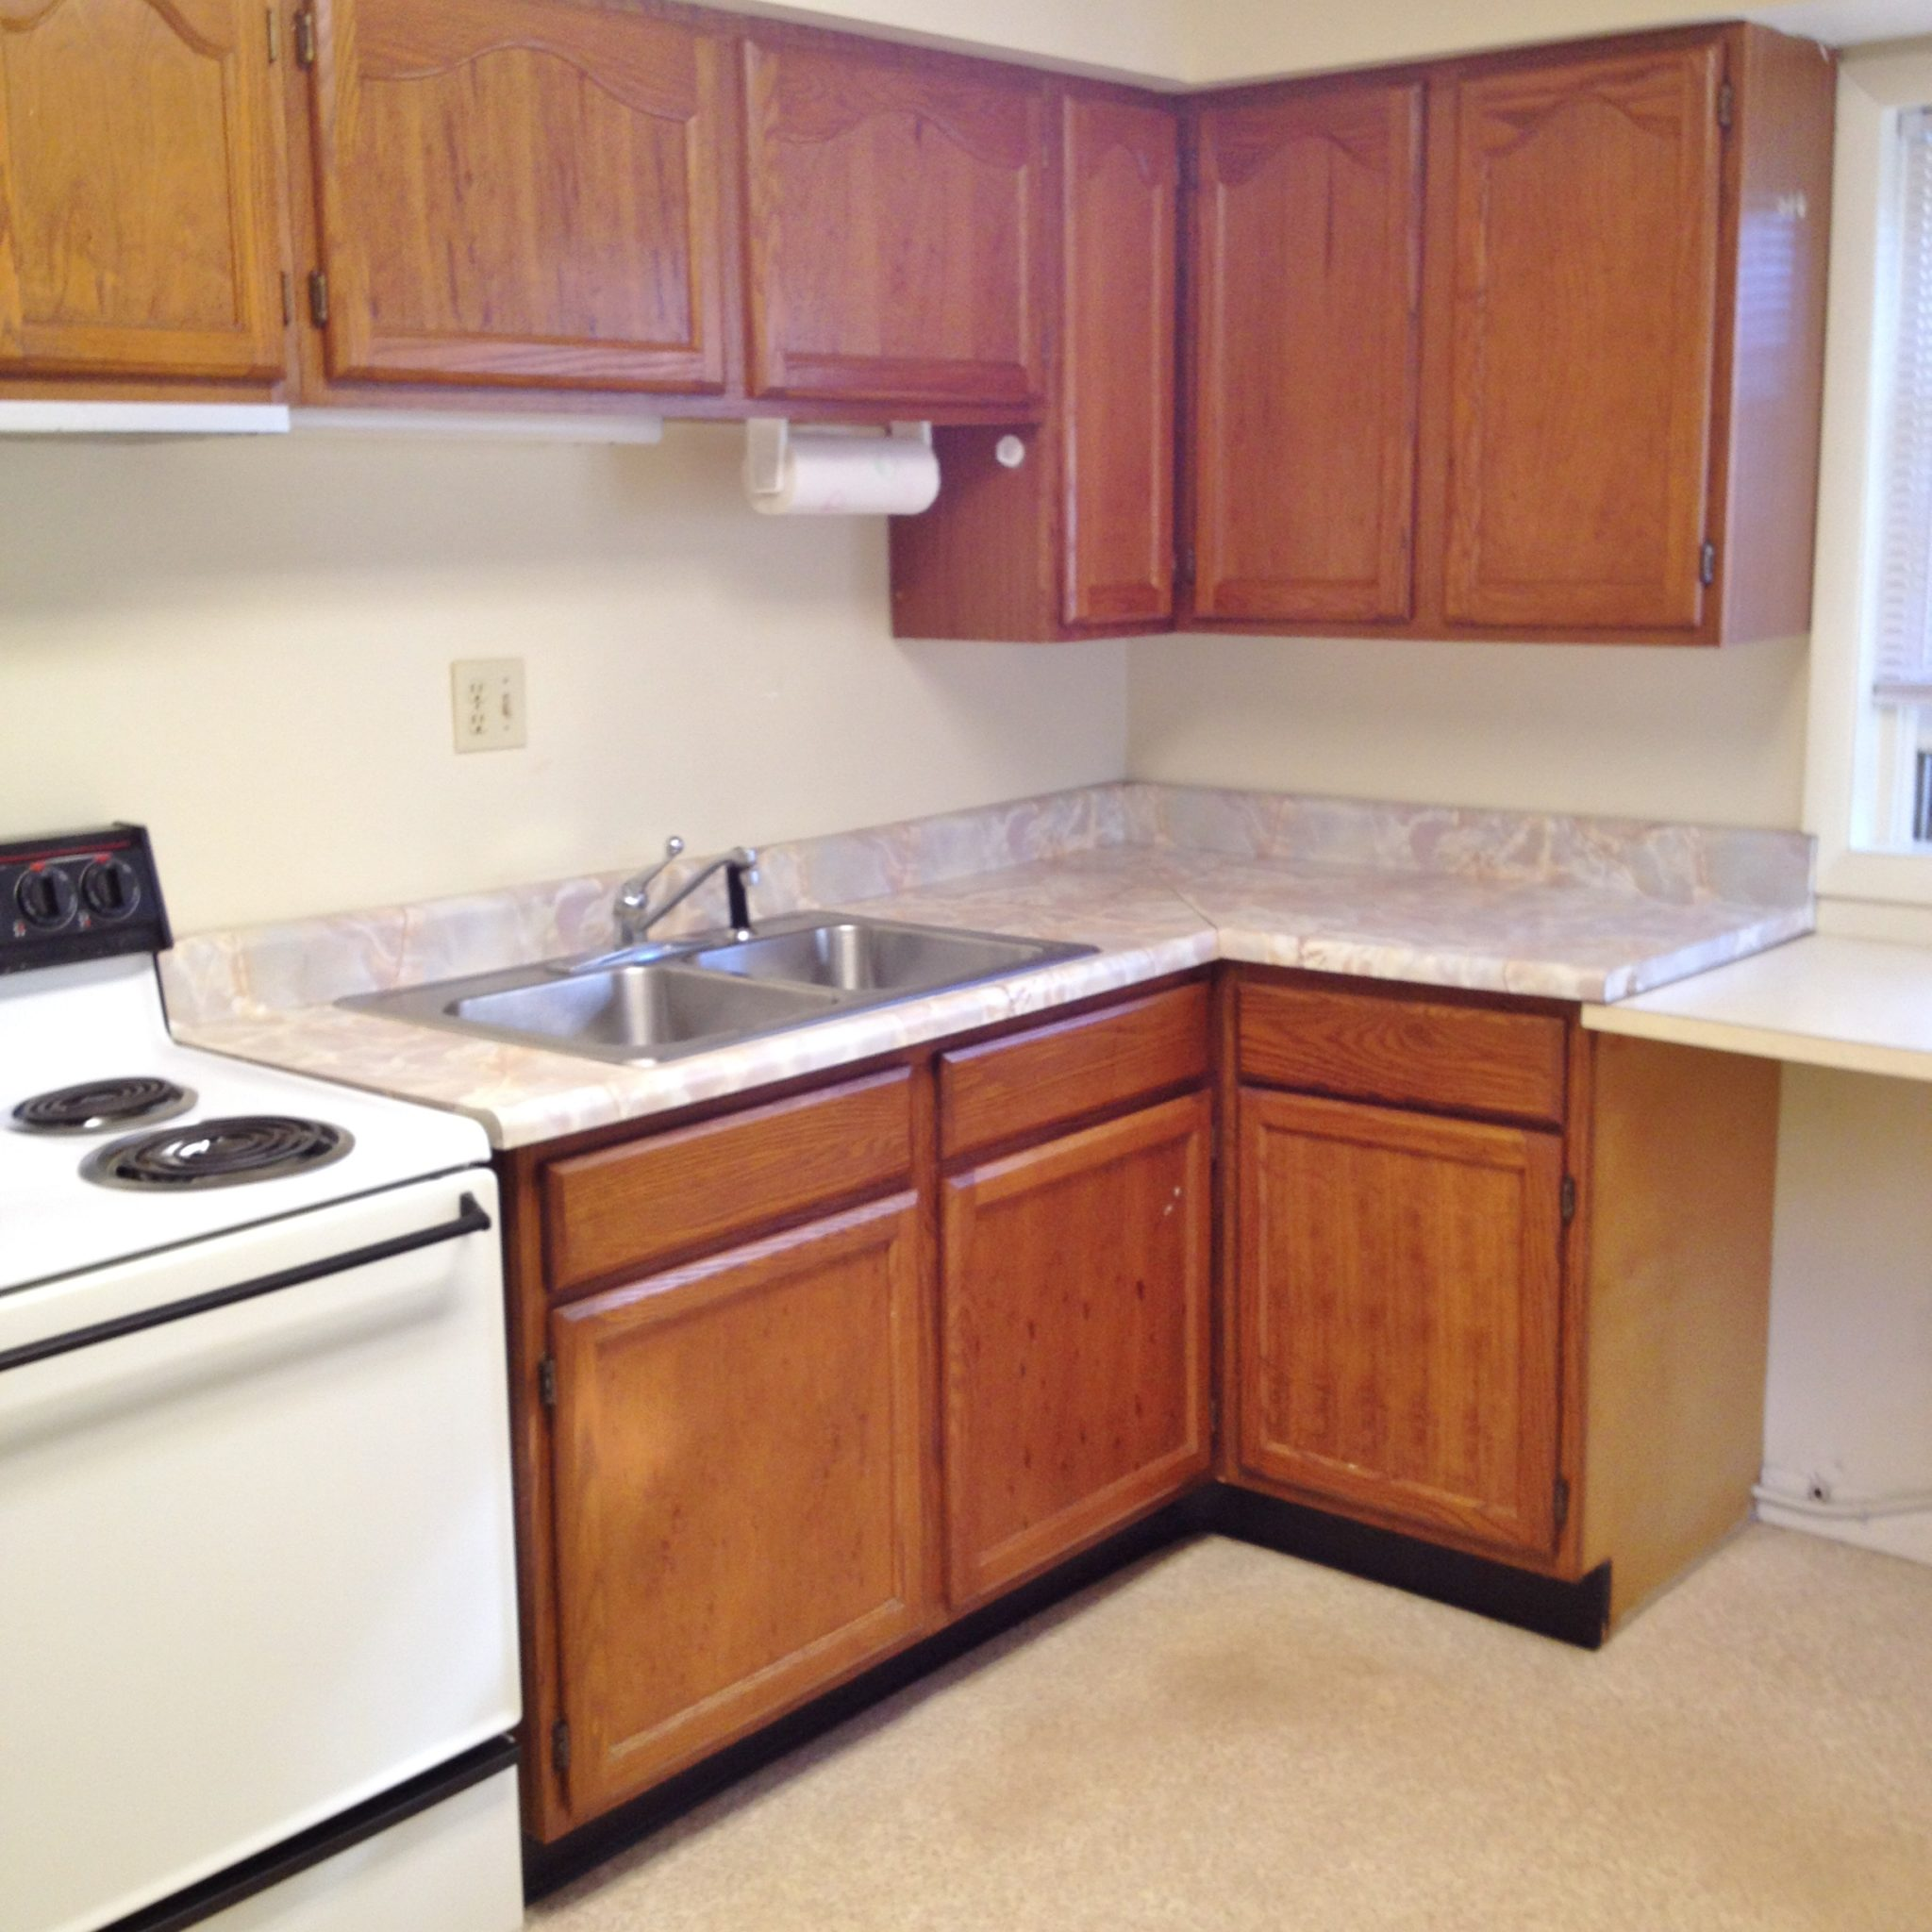 Kitchen photo #1 of the 921 Taylor Street apartment.